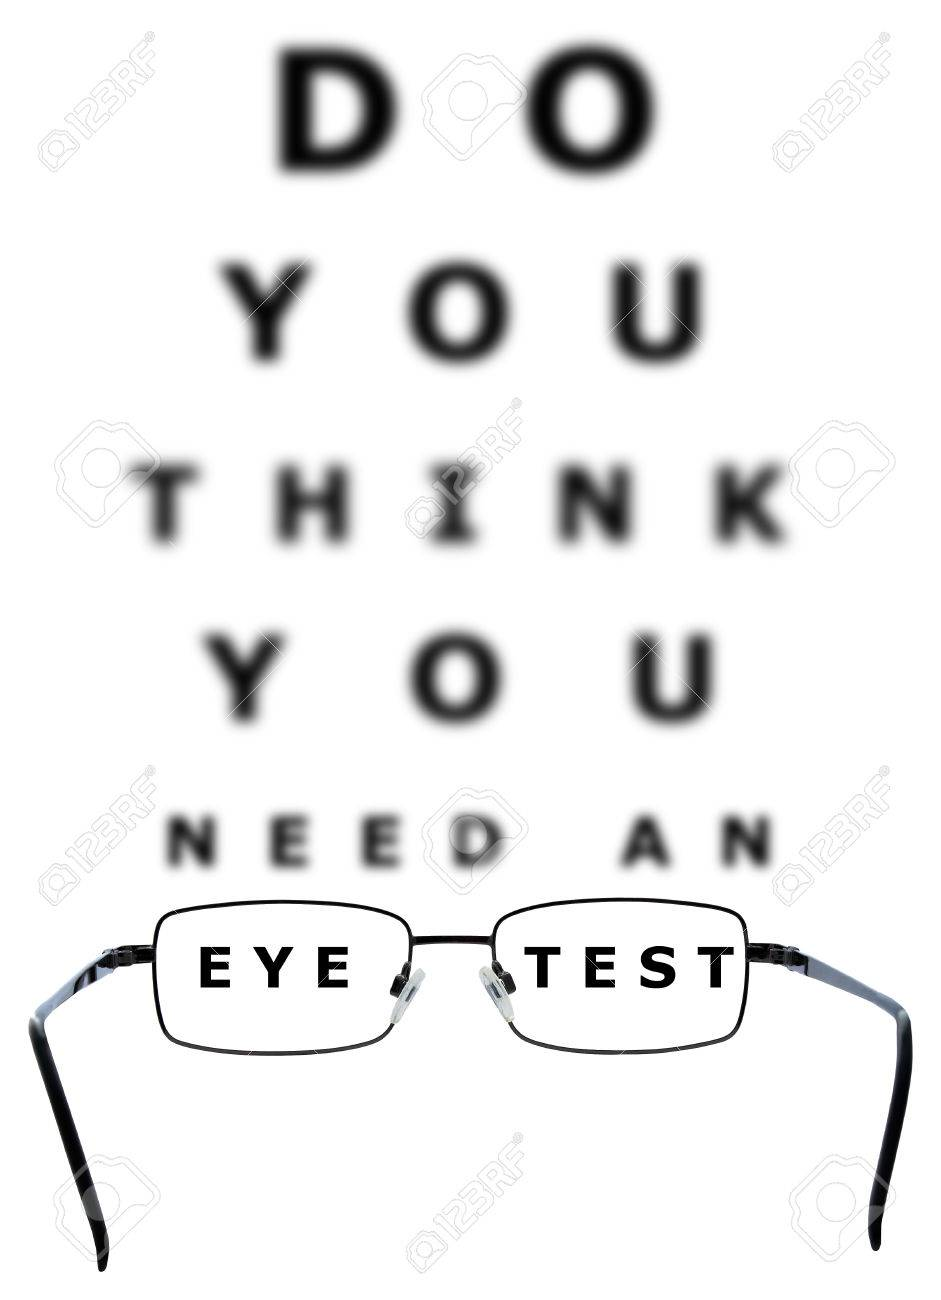 Eye examination chart with all the letters blurred apart from eye examination chart with all the letters blurred apart from the words eye and test through nvjuhfo Choice Image